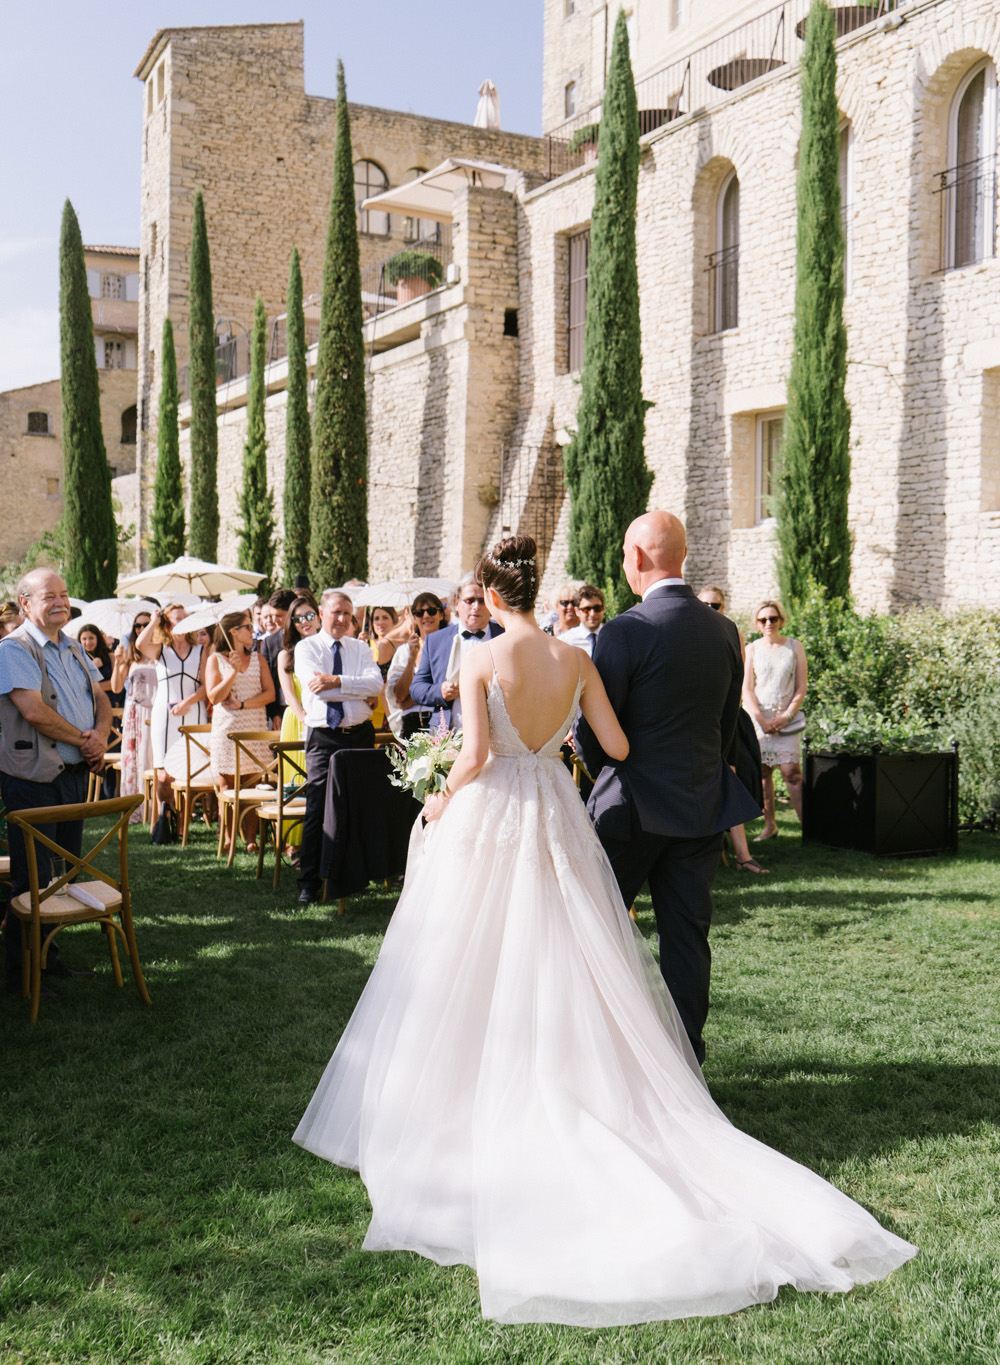 The bride and her father walk down the aisle at the ceremony in Gordes, France; Sylvie Gil Photography